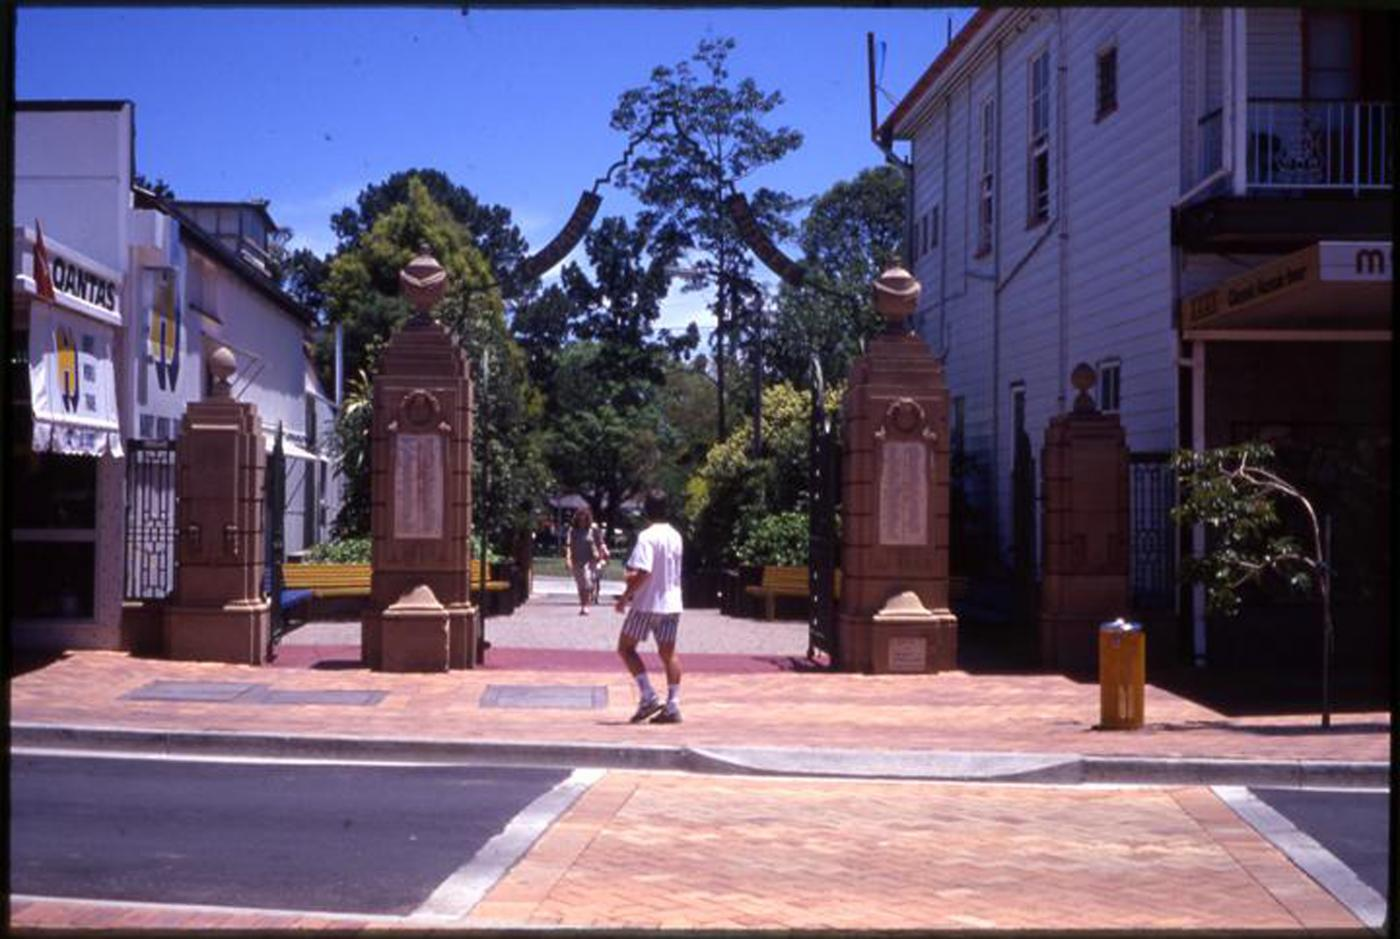 Gympie and Widgee War Memorial Gates, Memorial Gates and surrounds